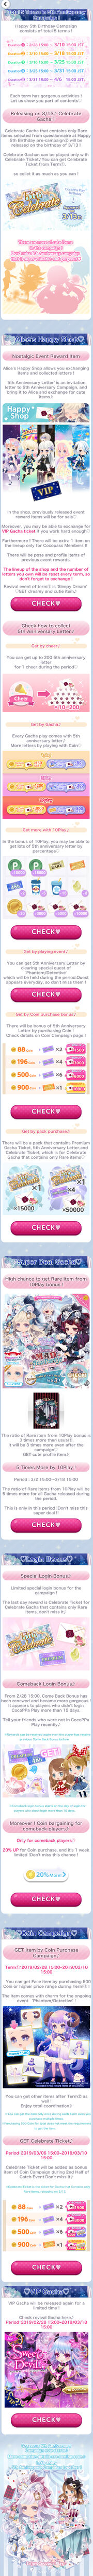 (Promotion) CocoPPa Play 5th Anniversary Promo 1